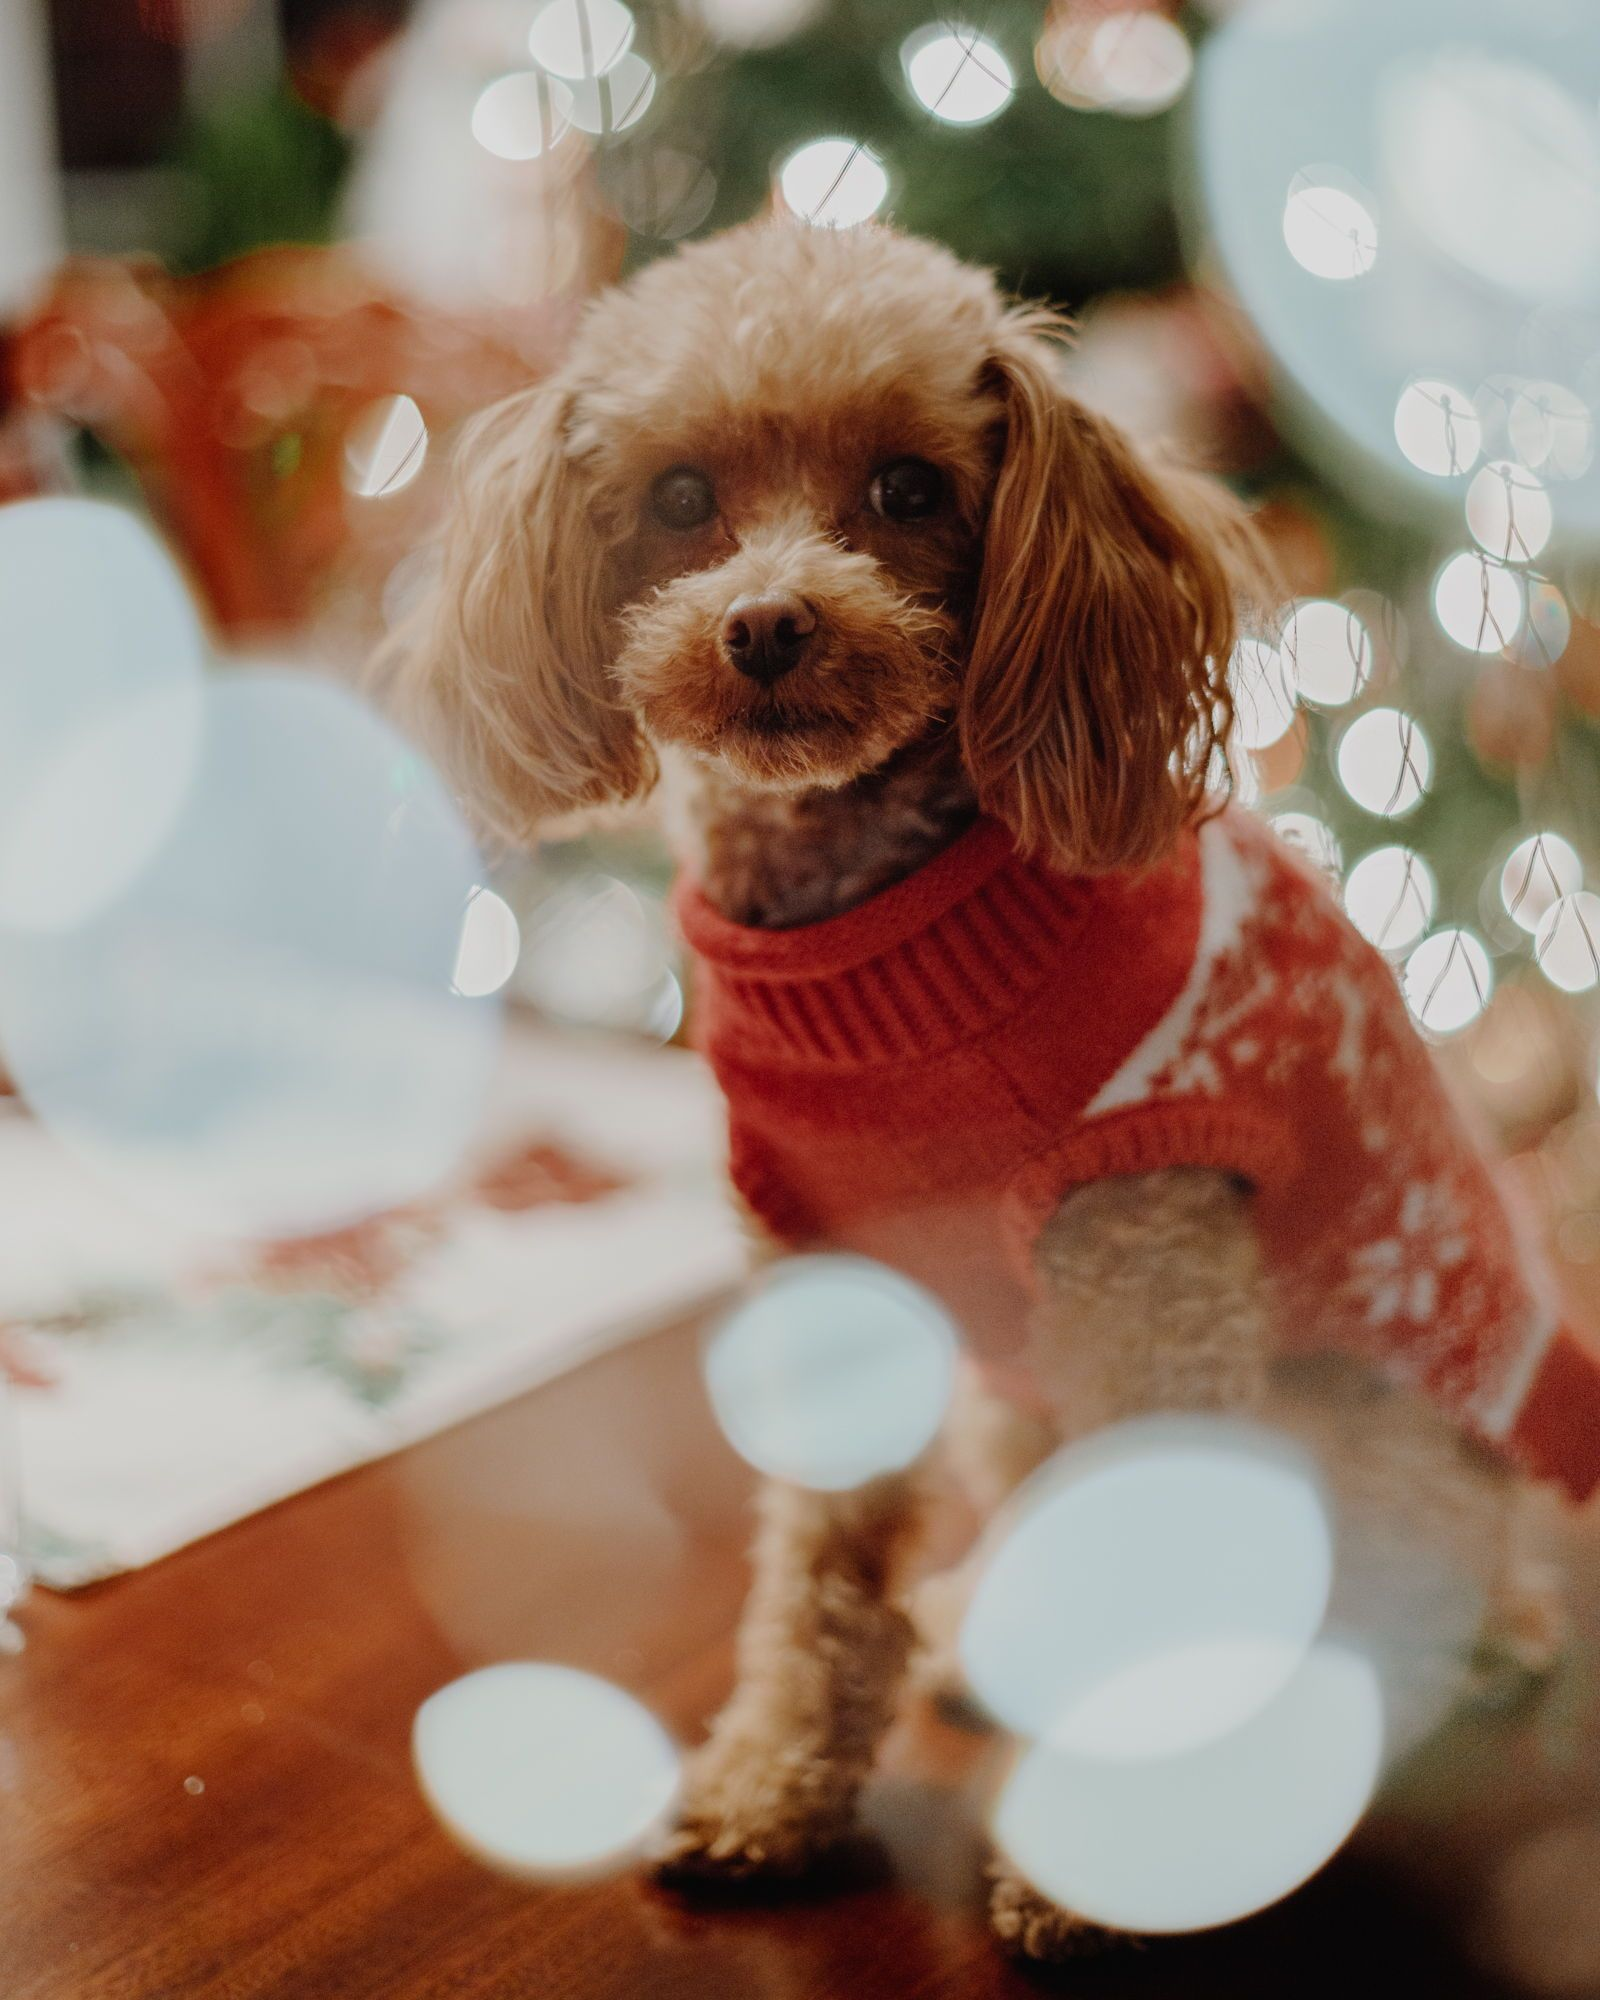 Cute Poodle Toy Poodle Ginger Poodle Apricot Poodle Red Poodle